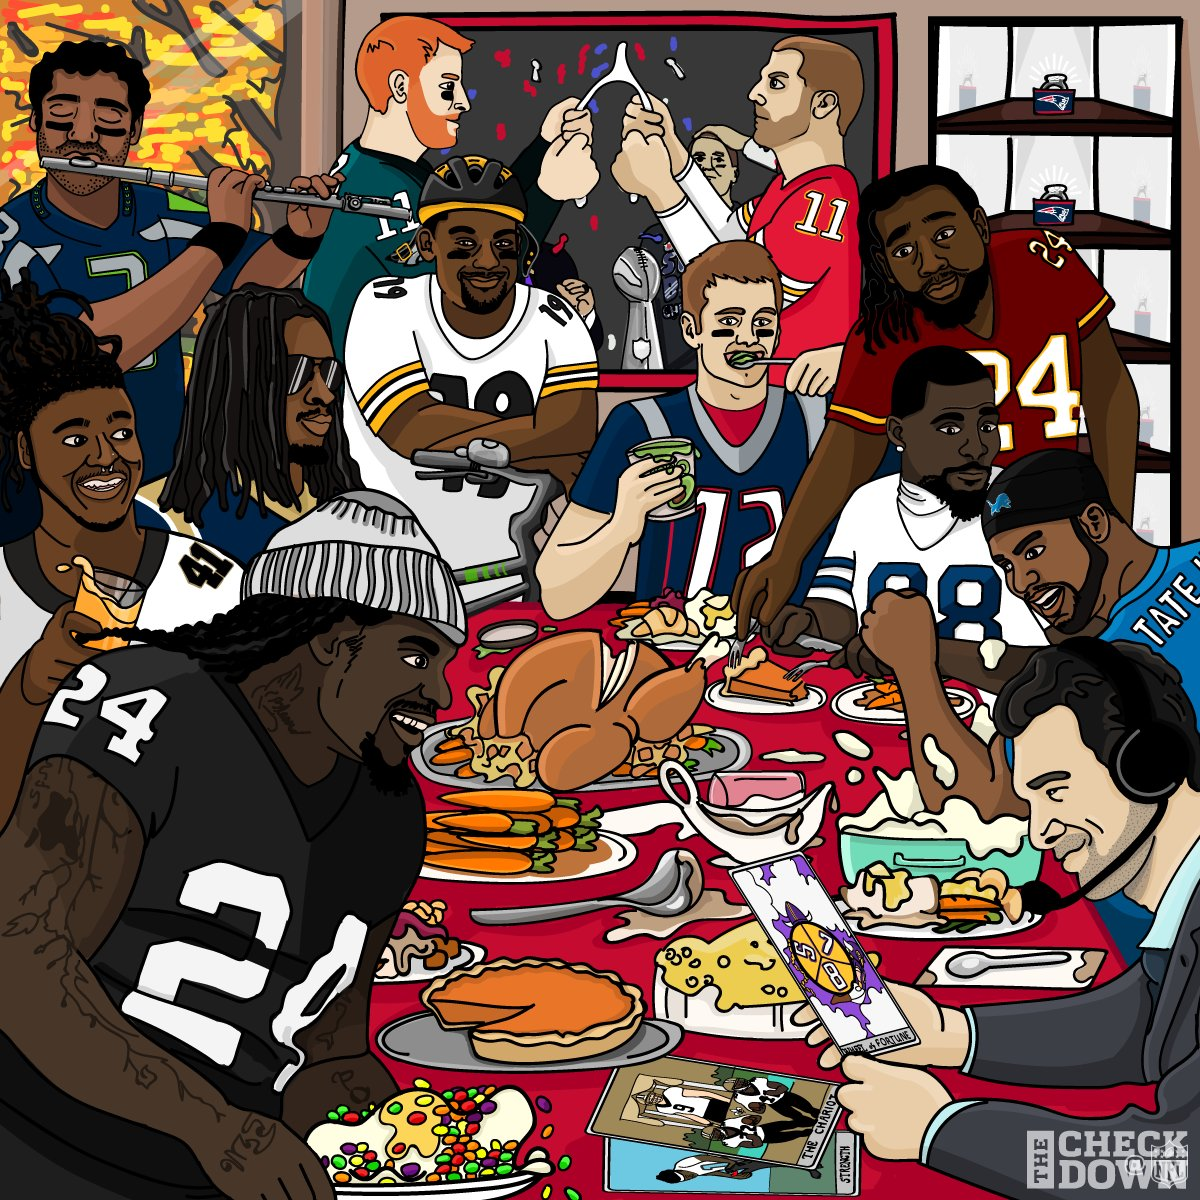 Family, friends, food ... and ��!  Happy Thanksgiving!  (via @thecheckdown) https://t.co/nGI88eo7MN